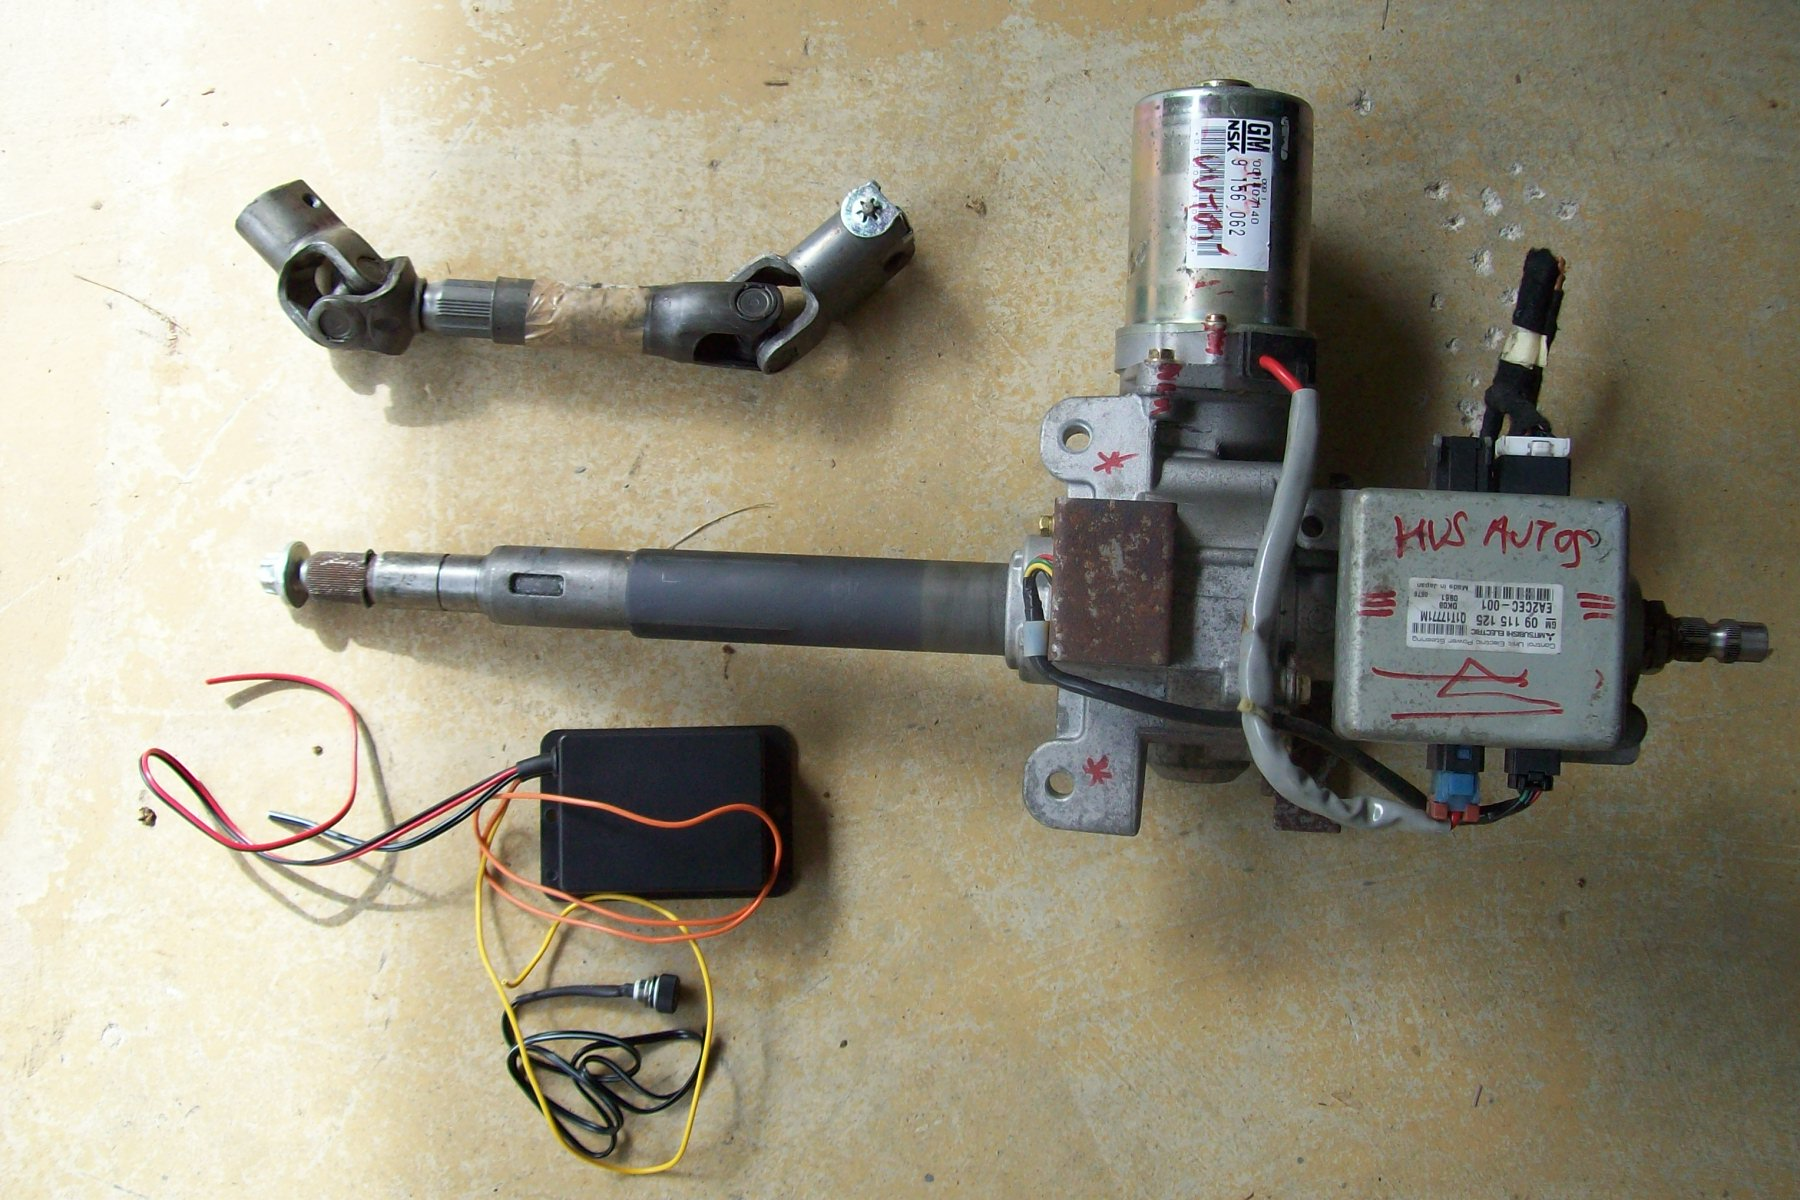 2008121105214088164power steering unit 2008121105214088164power steering unit jpg corsa c electric power steering wiring diagram at aneh.co